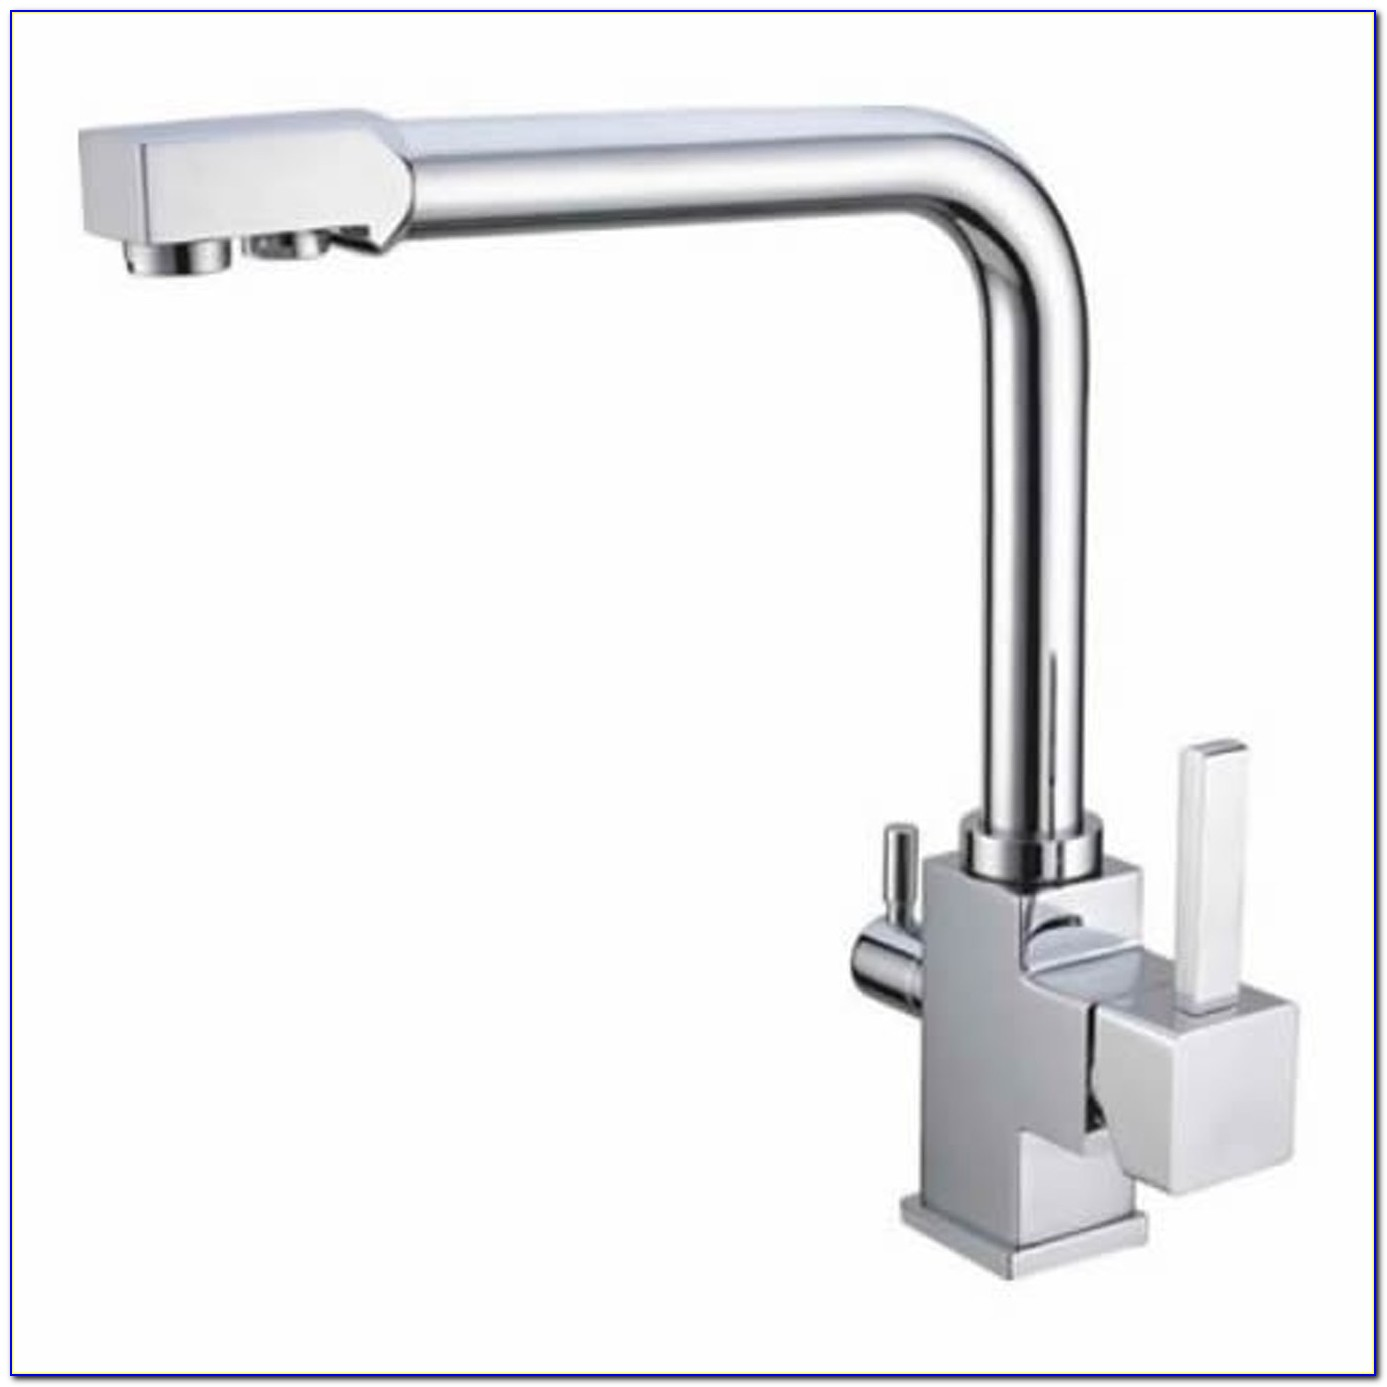 Faucet Mounted Water Filtration